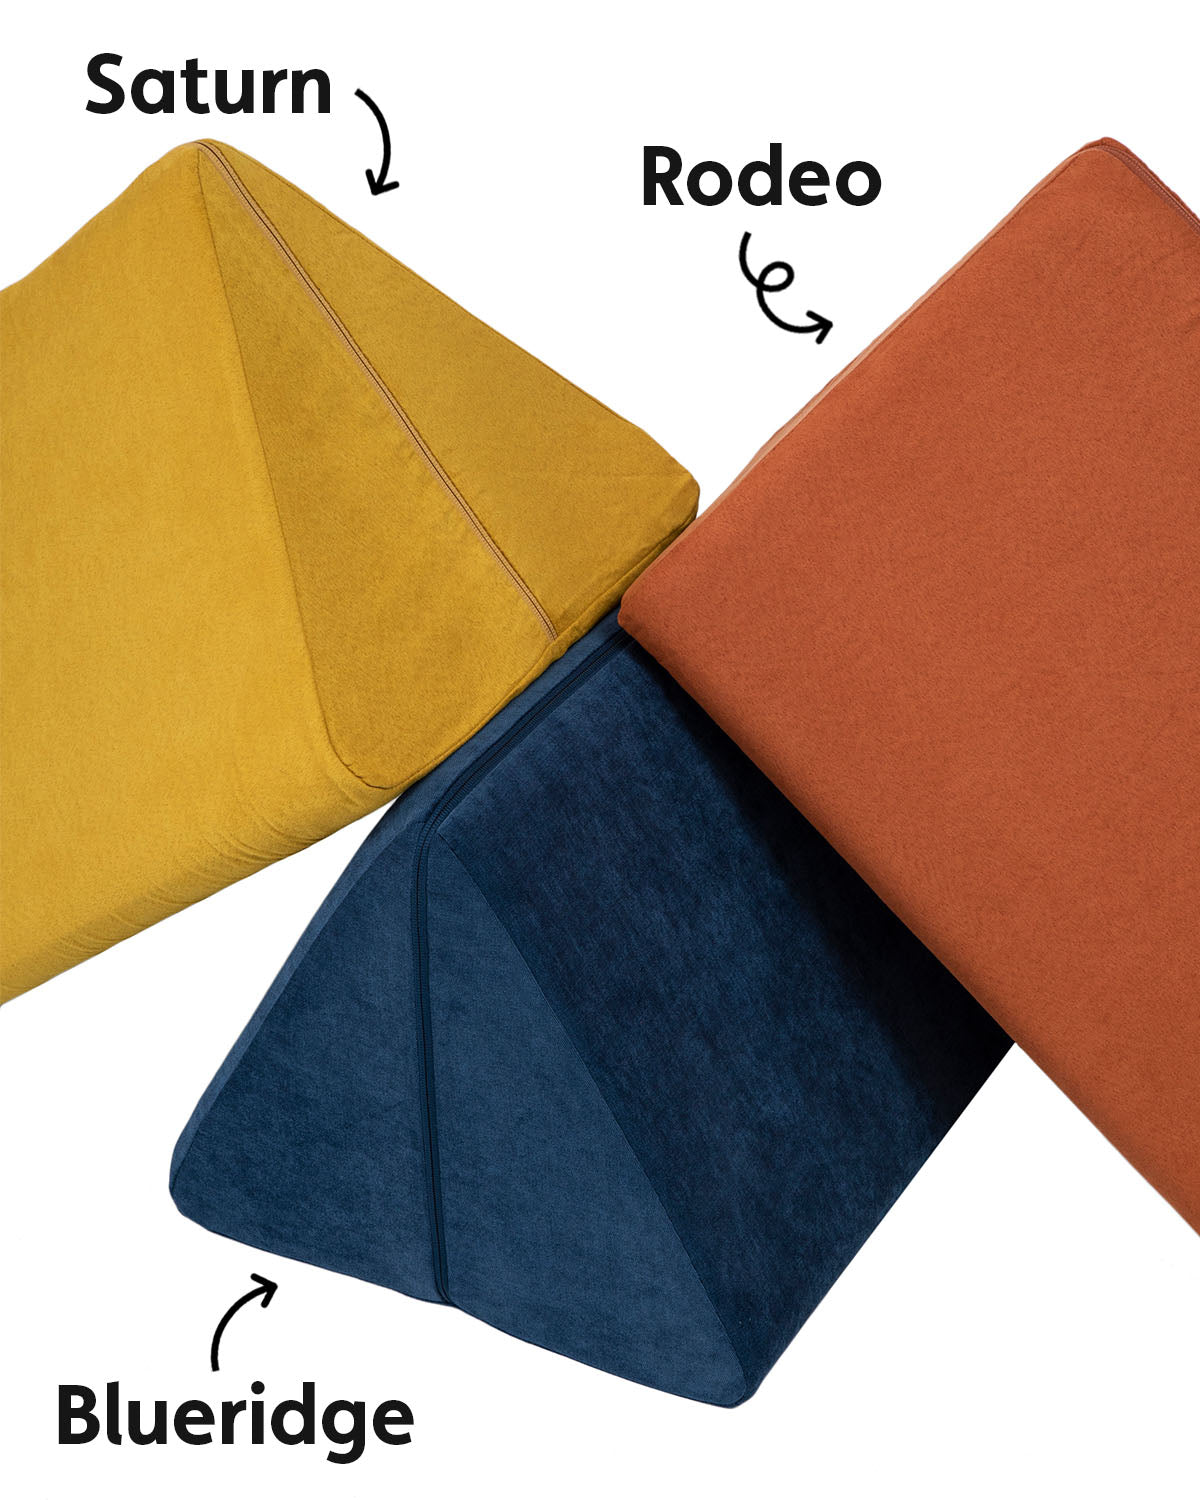 Three Nugget pillows stacked on top of each other, from left to right: Saturn, Blueridge, and Rodeo.